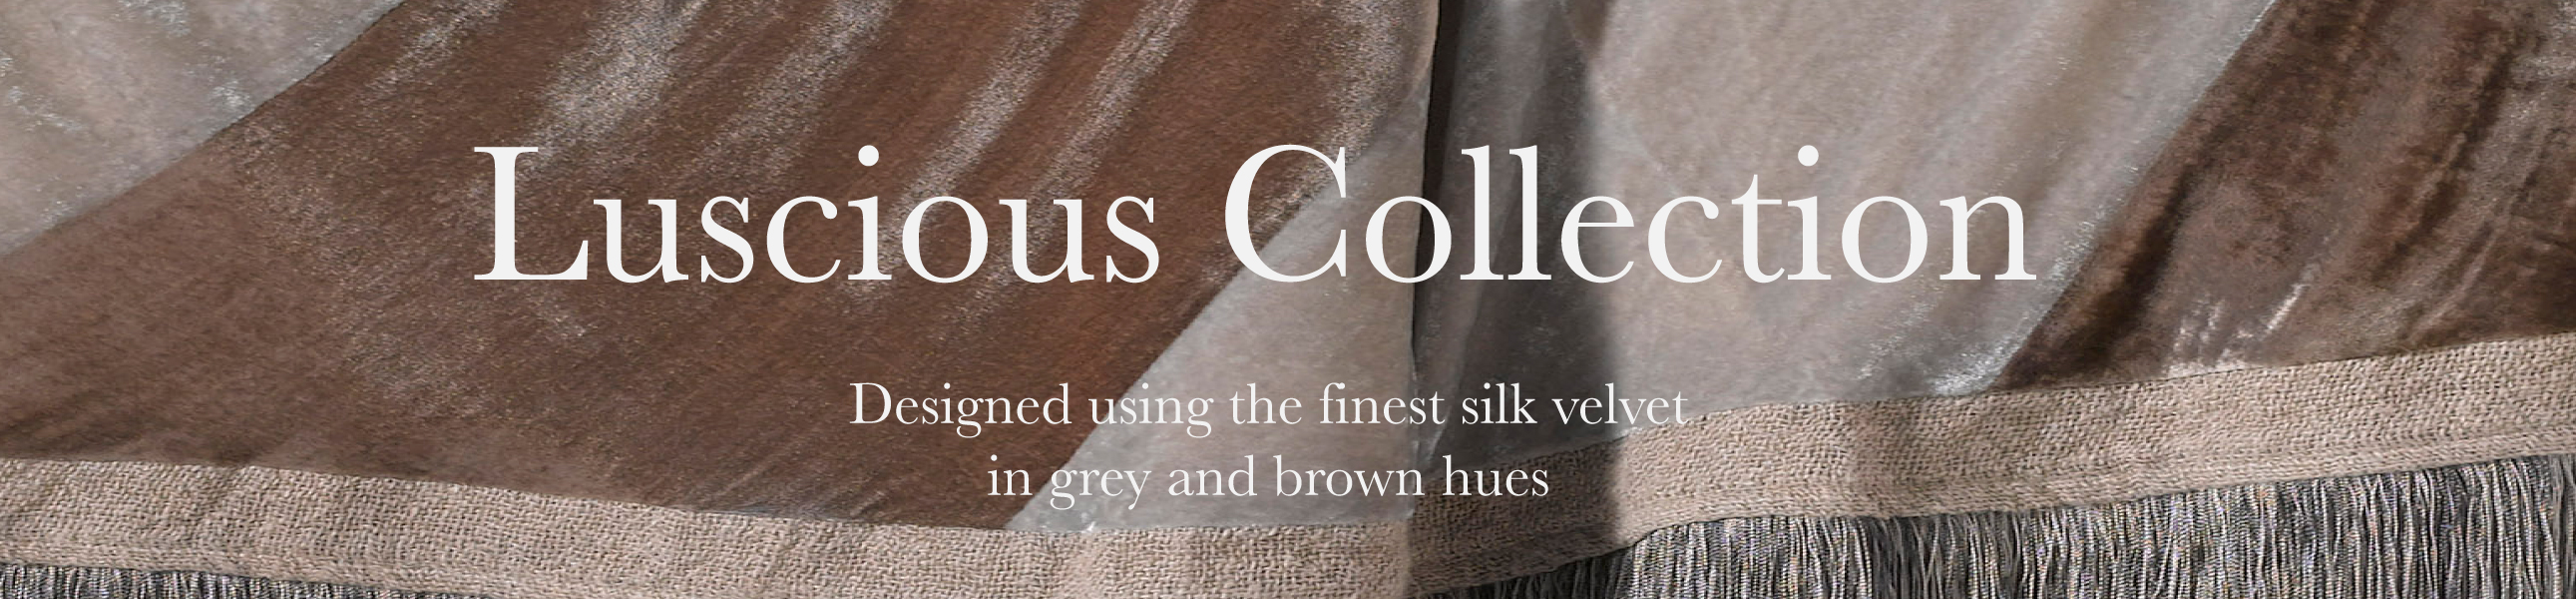 couture-dreams-cozi-collection-banner-image.jpg